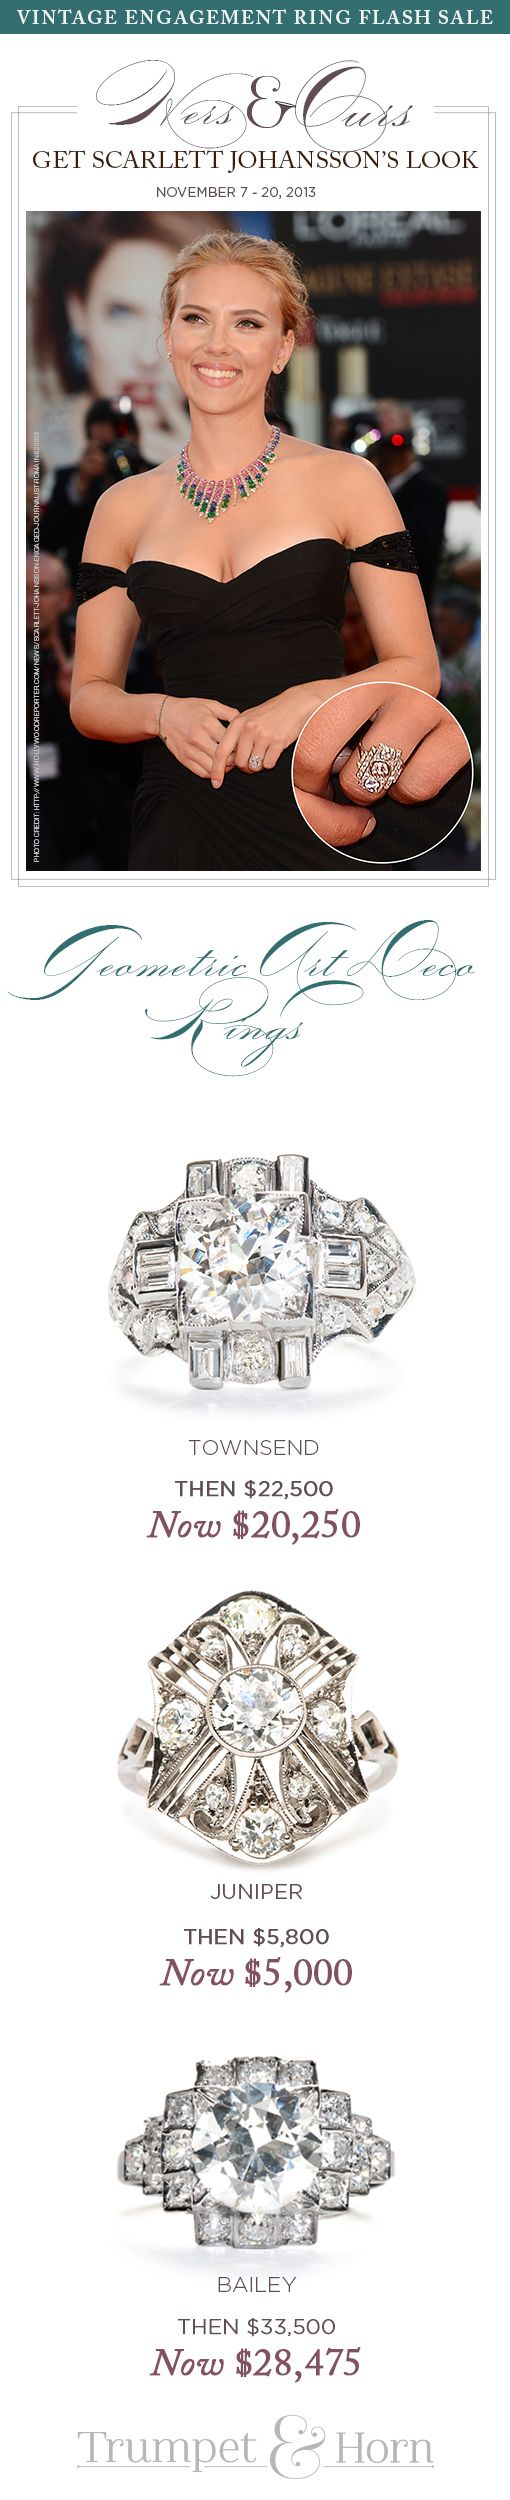 Love Scarlett Johansson's engagement ring? So do we! Click to shop our Hers & Ours engagement ring SALE featuring 3 authentic vintage Art Deco rings inspired by Scarlett's. Until November 20th! http://trumpetandhorn.com/celebrity-engagement-rings